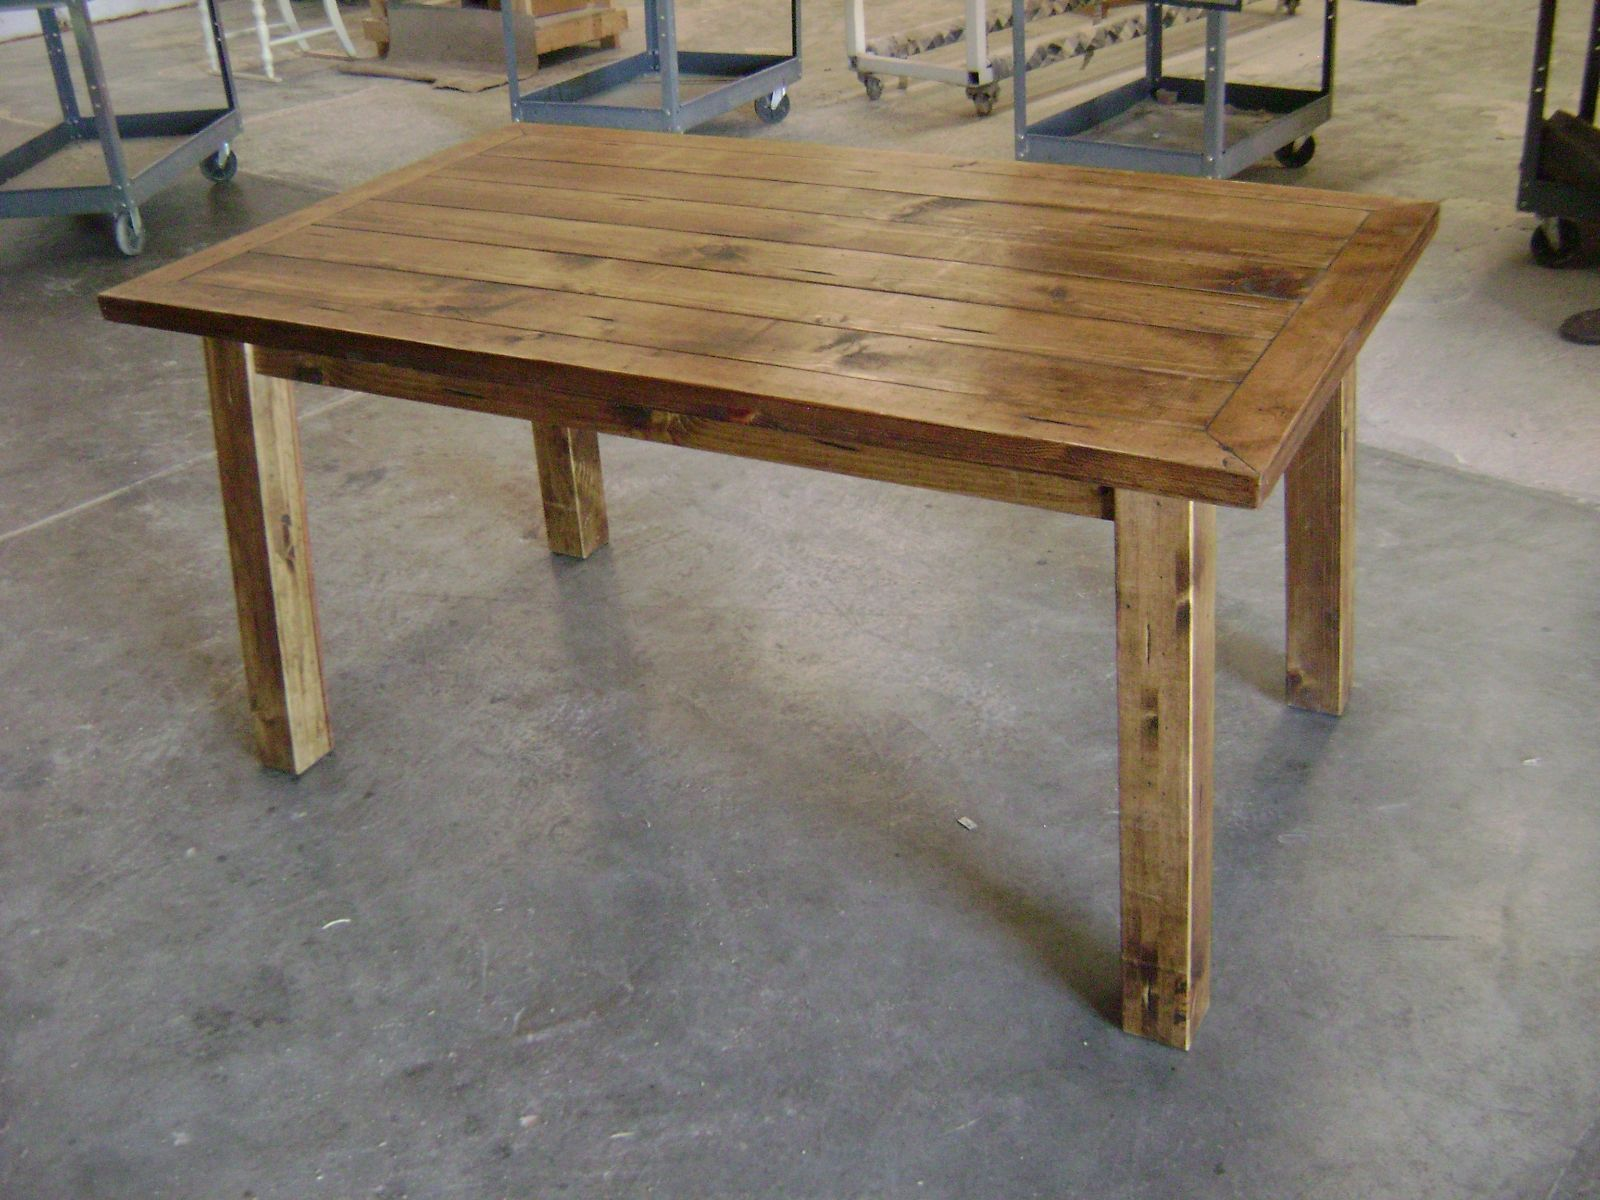 Custom Rustic Pine Dining Table by Philip Skinner Furniture ...